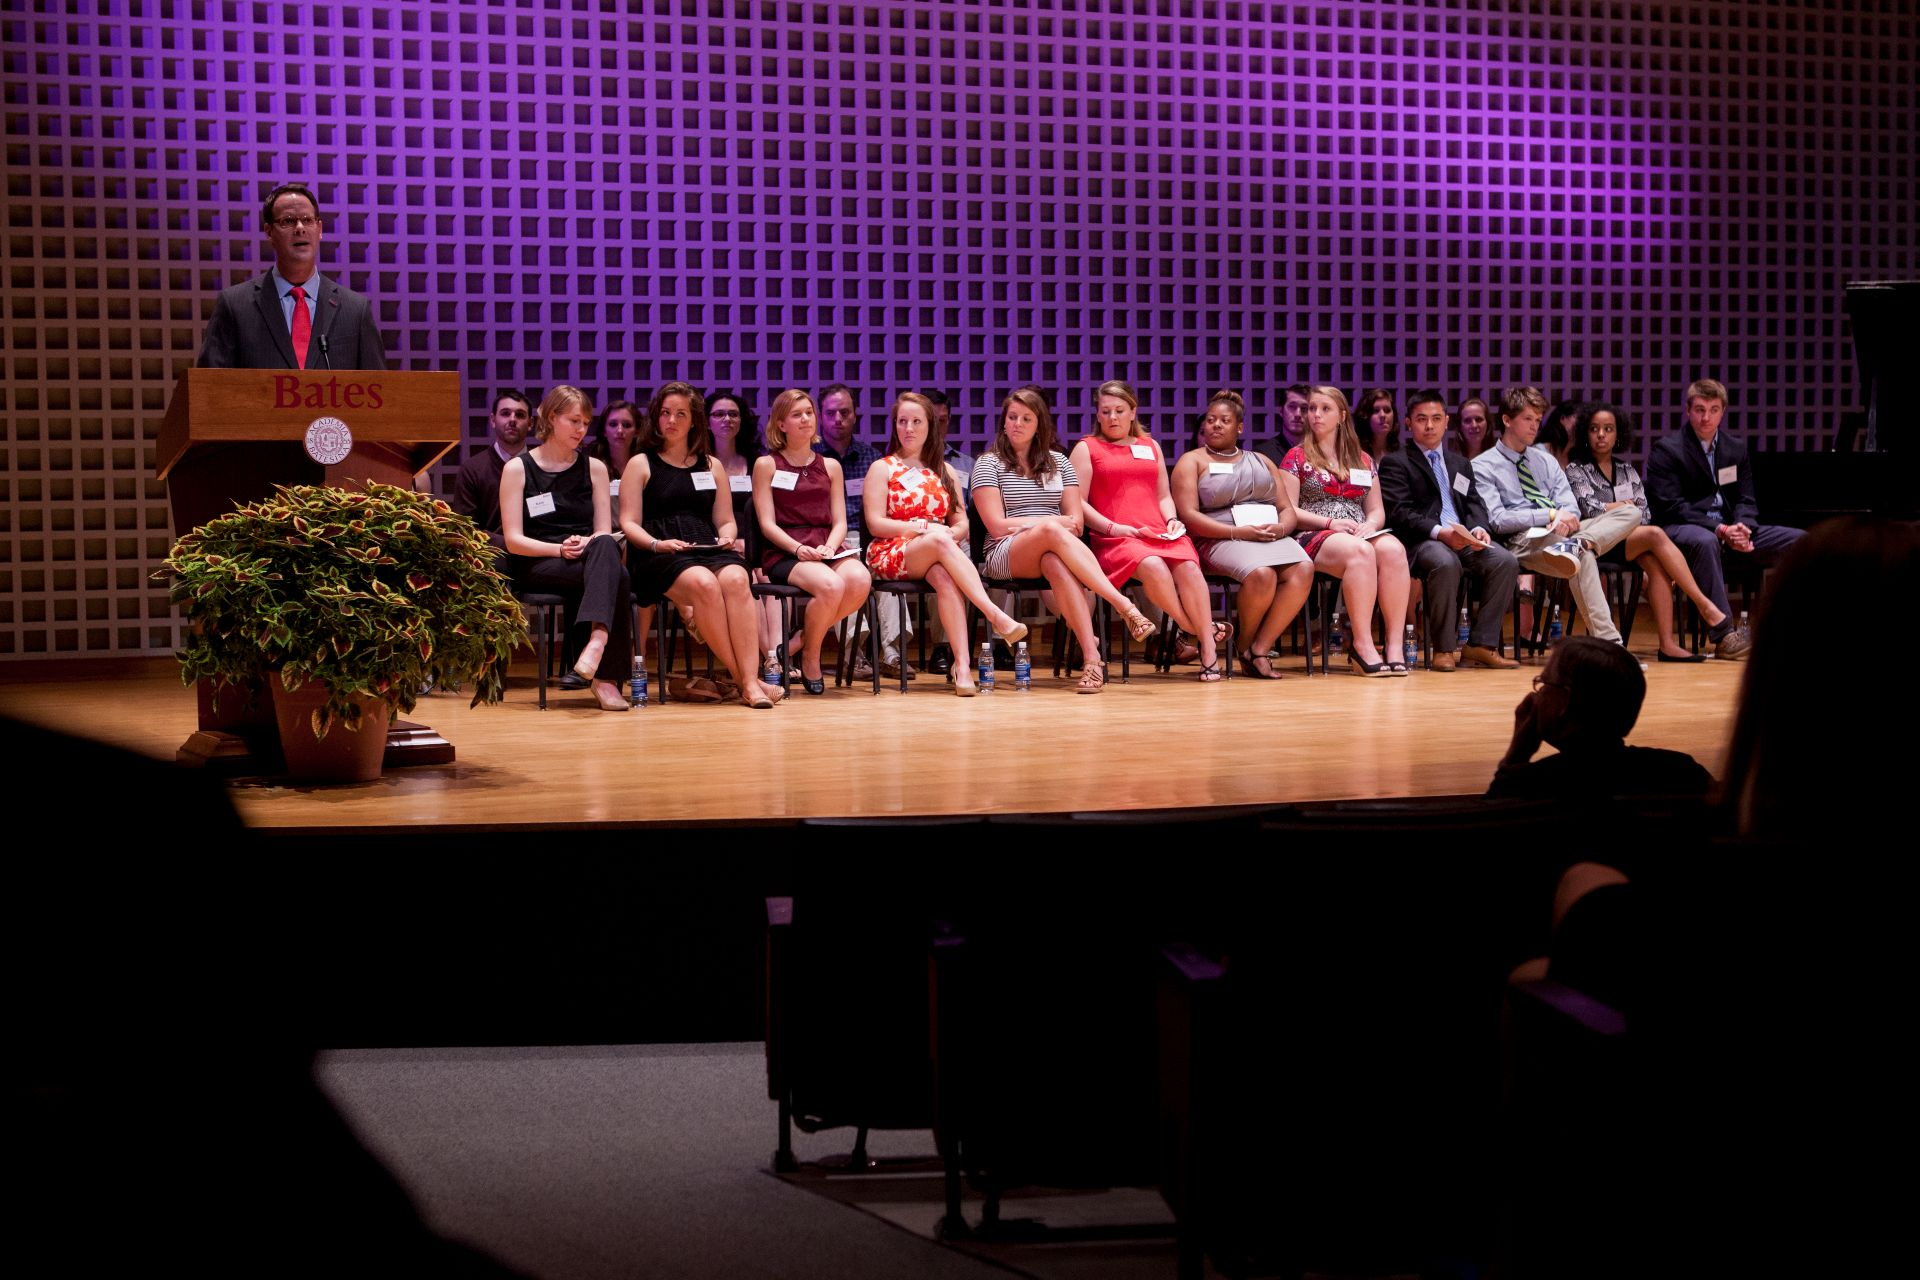 The College Key inducts new student members during a ceremony in Olin Arts Center on May 23, 2014. (Sarah Crosby/Bates College)